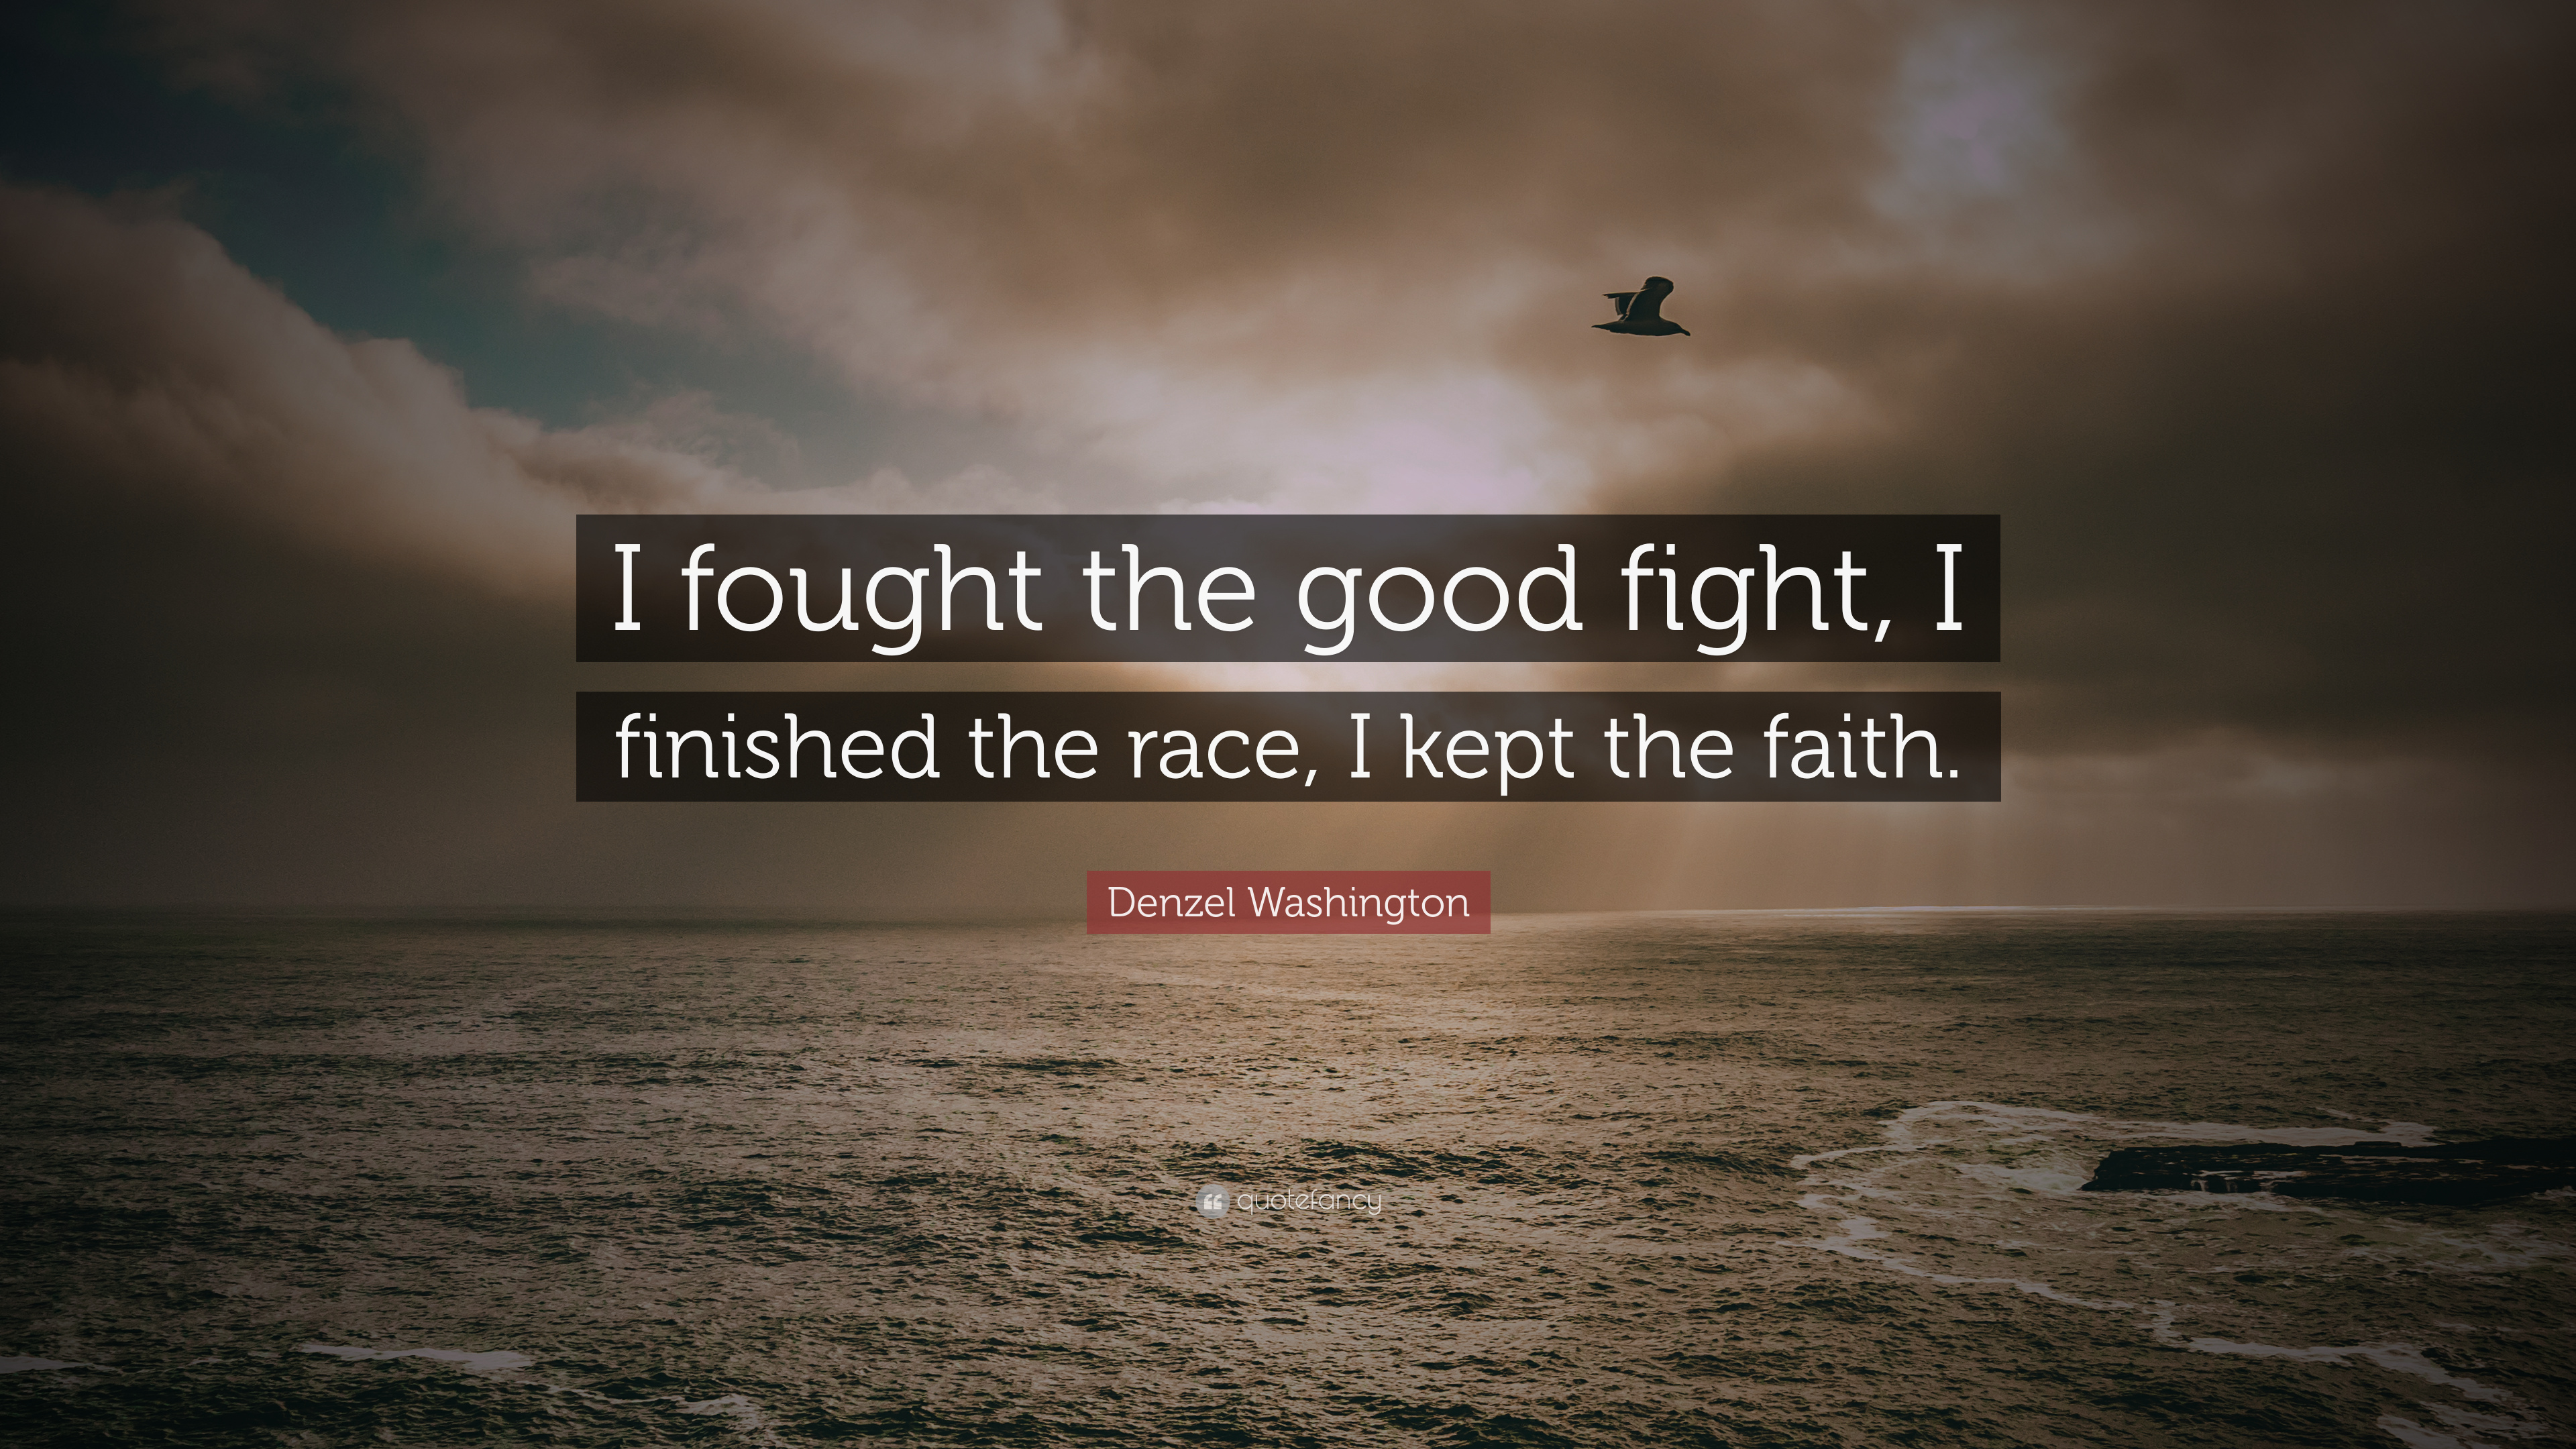 """Quotes About Fighting The Good Fight: Denzel Washington Quote: """"I Fought The Good Fight, I"""